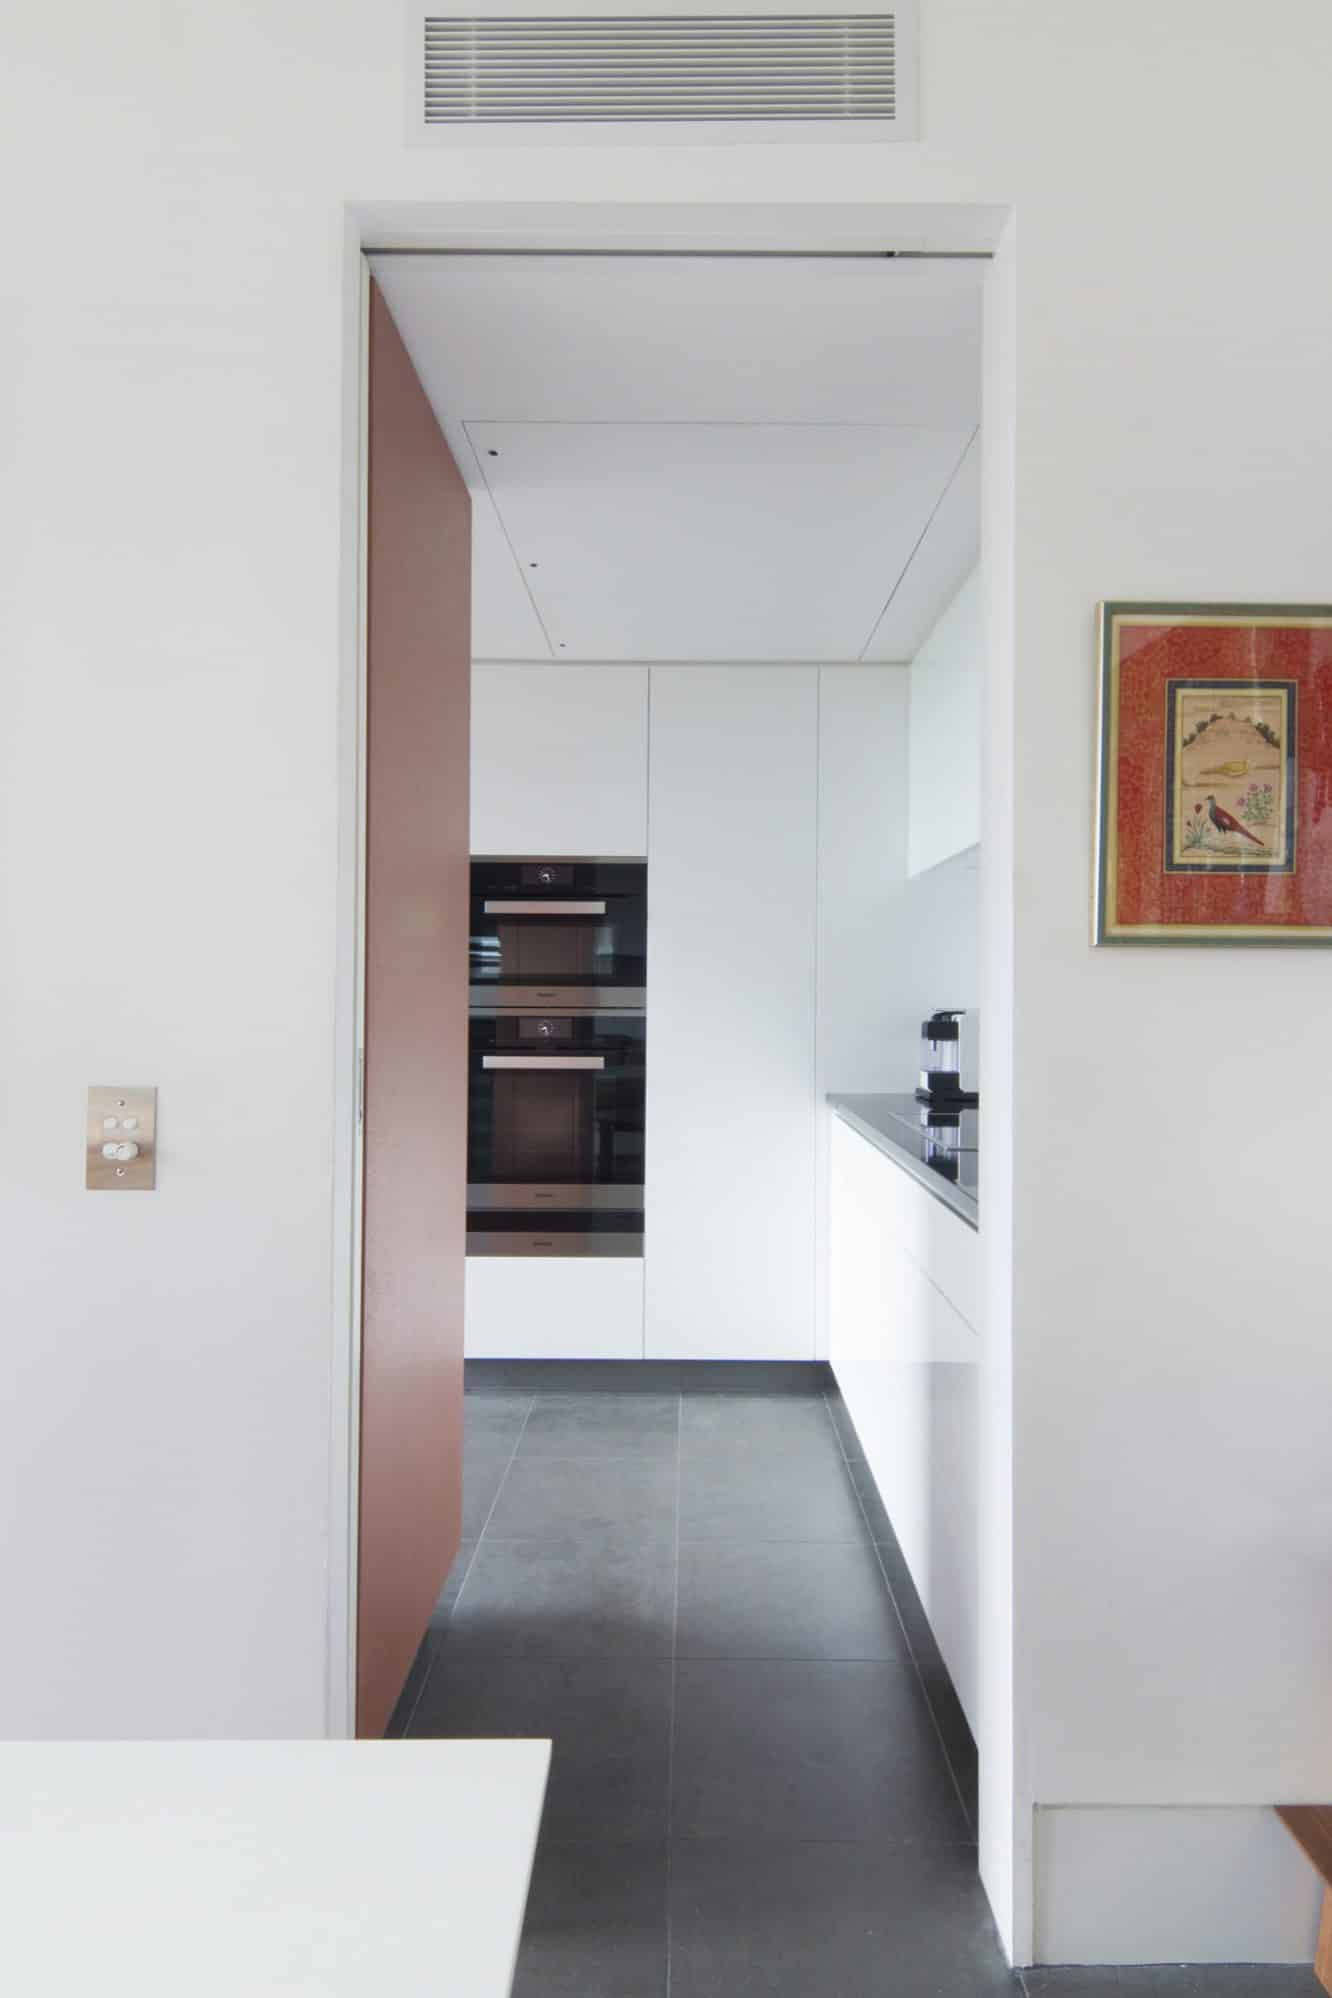 Entry in to the small kitchen